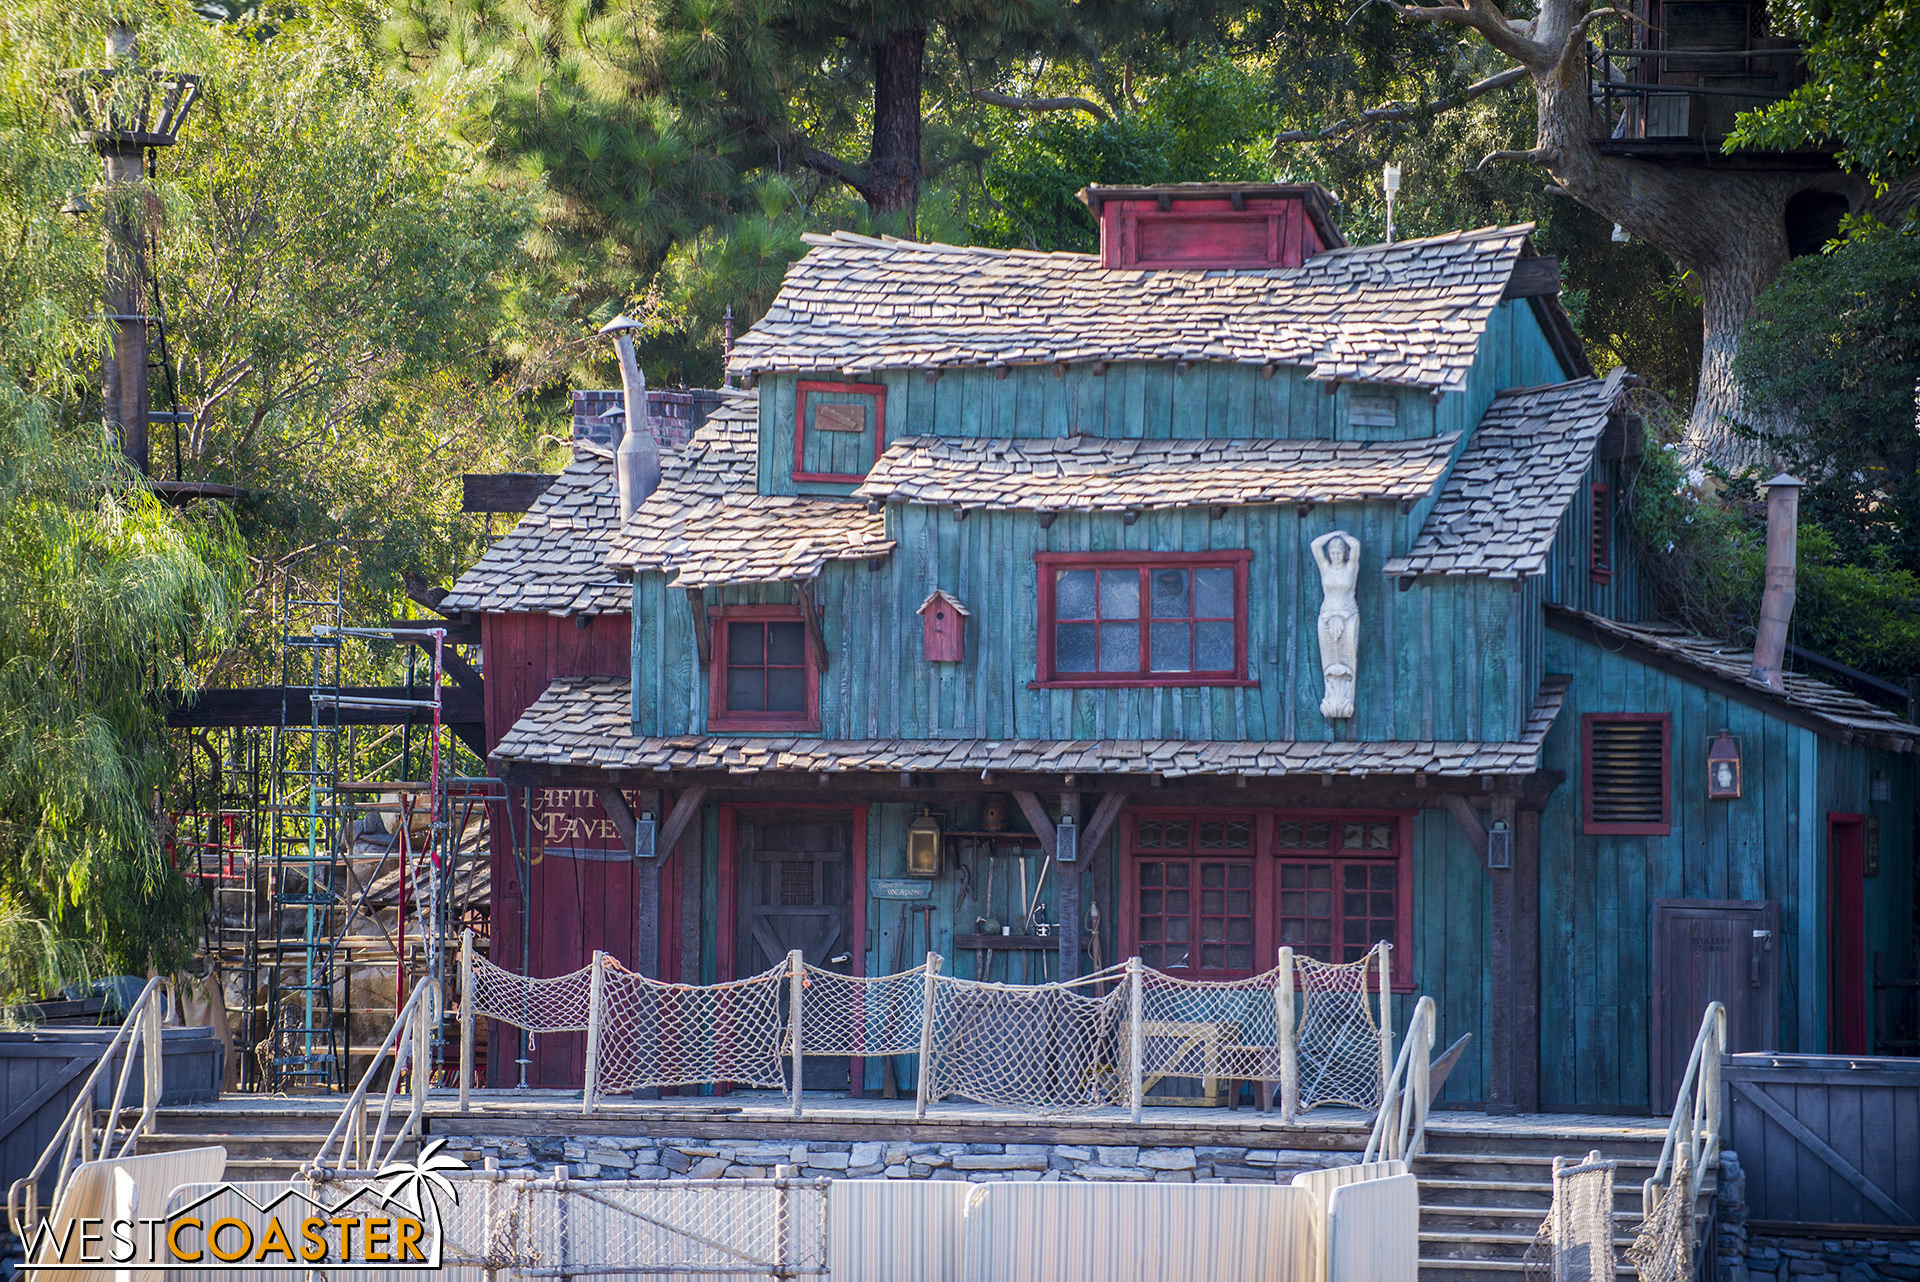 """Walt Disney himself wrote about this building and was like """"Yo, I like dis s**t, fool... don't never change it, a'ight?"""""""